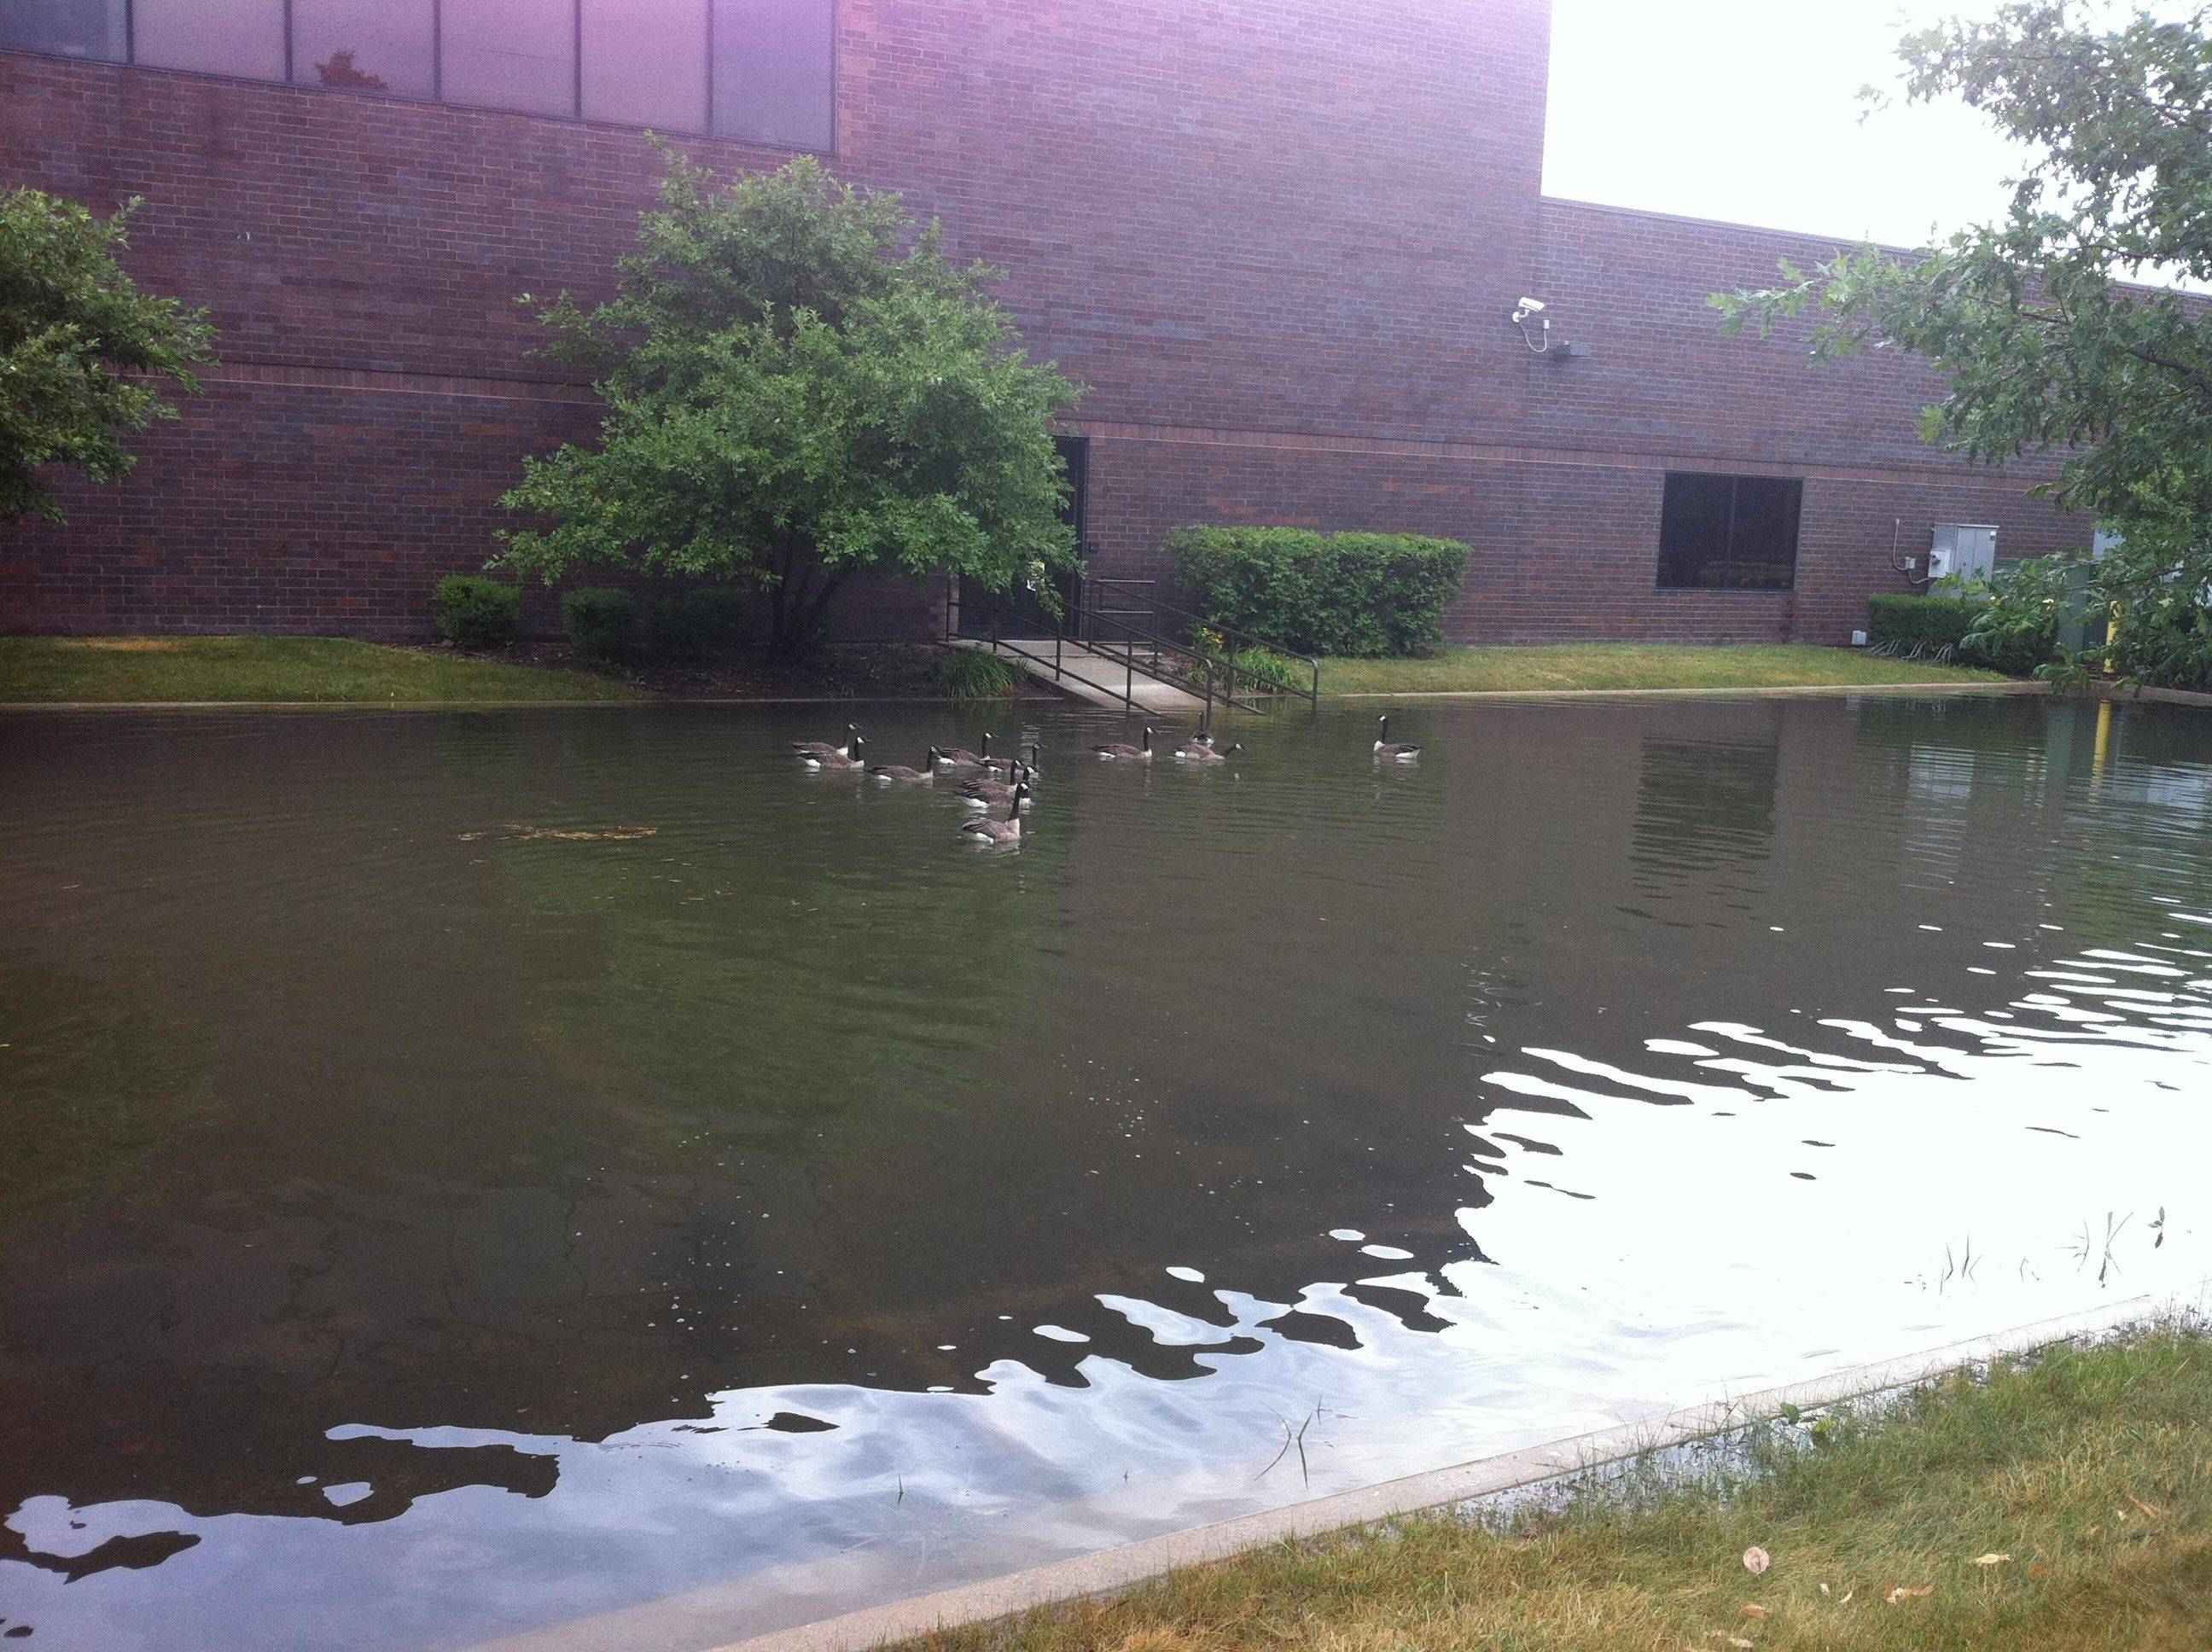 The geese were quite happy with the flooding in this parking lot in the Business Center Drive area in Mount Prospect. The trekked over from a nearby pond to check out the new swimming area.